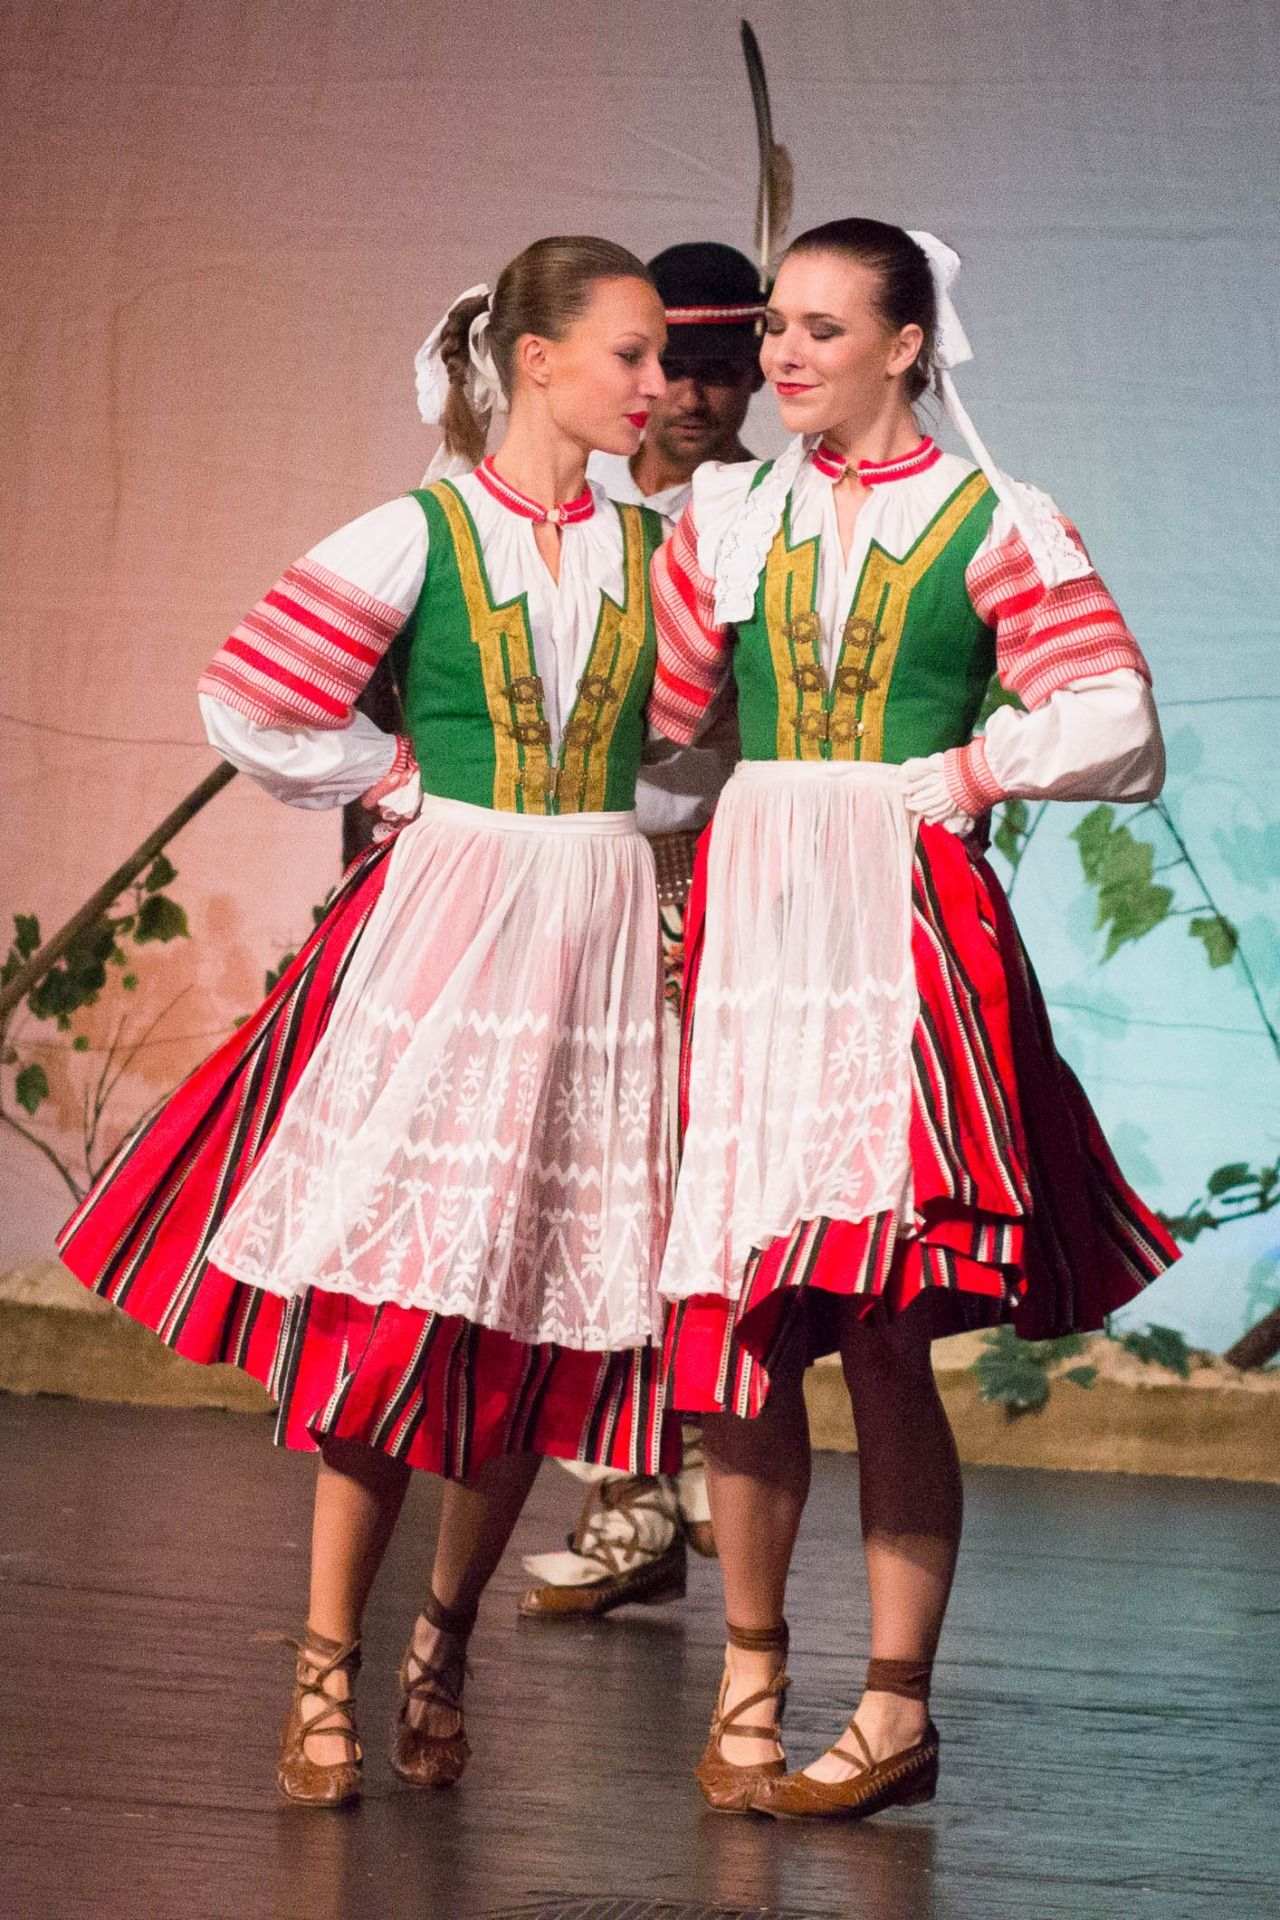 czech dating etiquette The polka is originally a czech dance and genre of dance music familiar throughout europe and the americas it originated in the middle of the 19th century in.